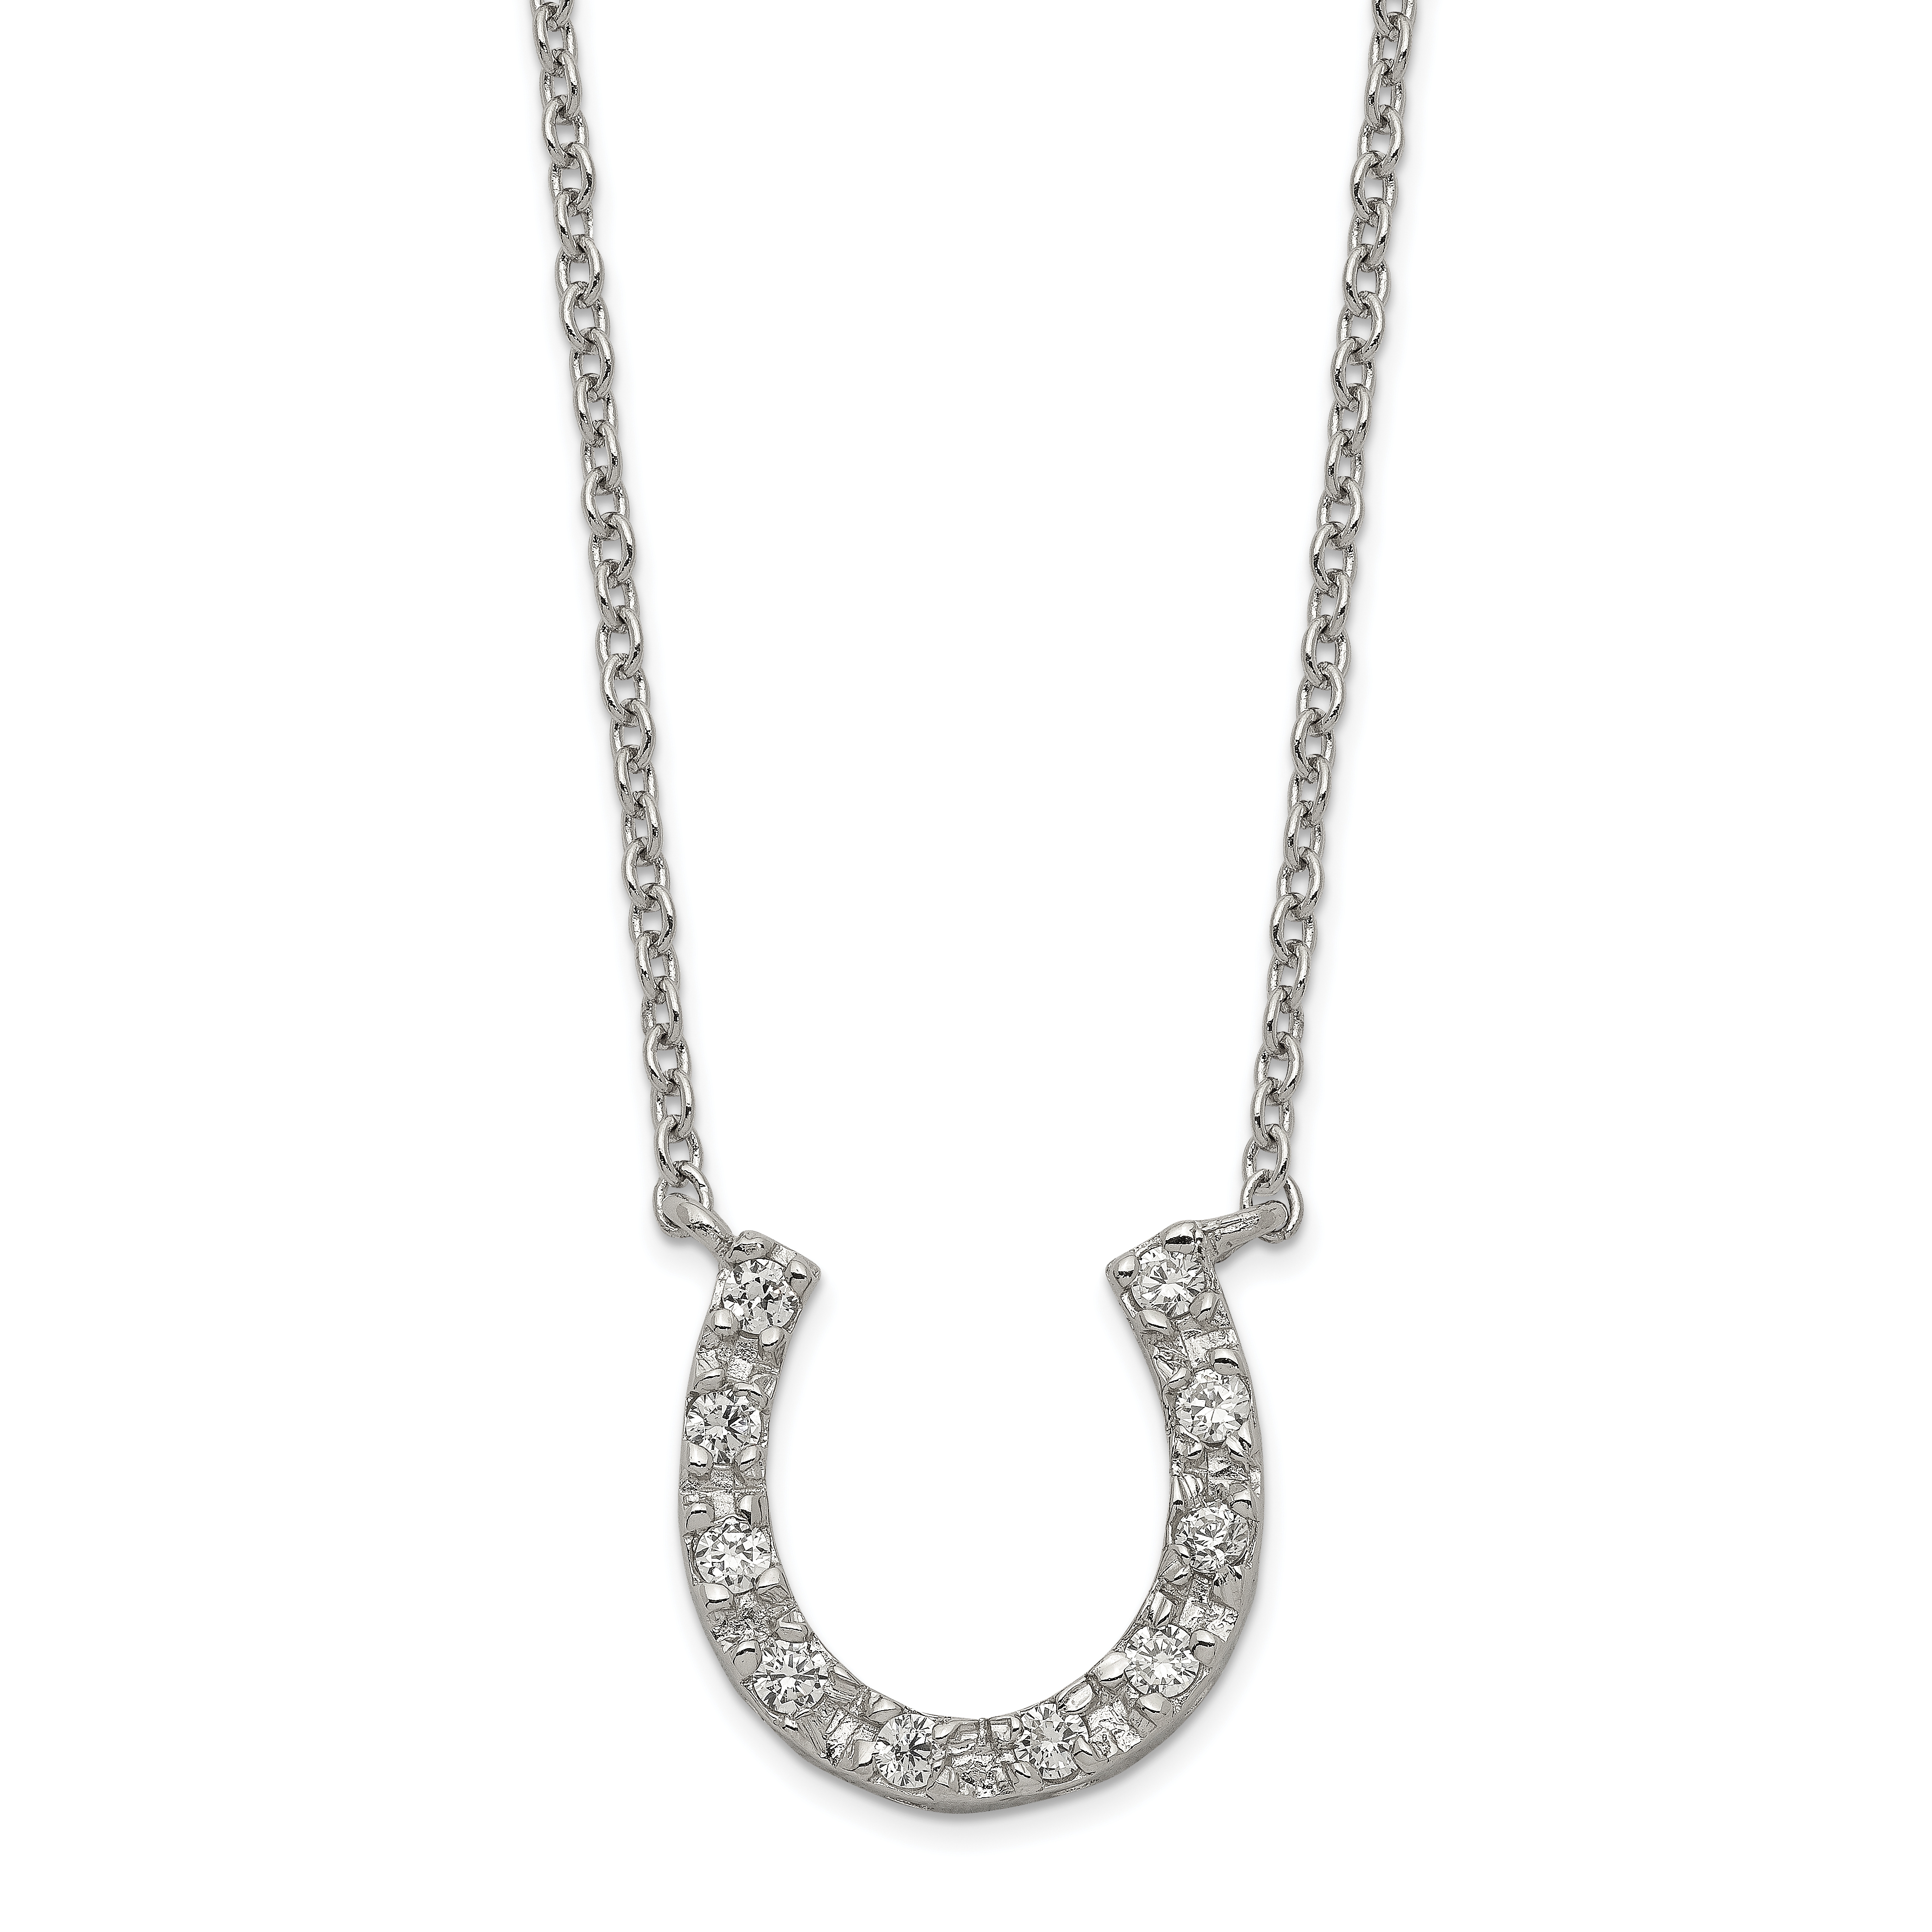 925 Sterling Silver Cubic Zirconia Cz Horseshoe Chain Necklace Pendant Charm Good Luck/italian Horn Fine Jewelry Gifts For Women For Her - image 2 de 2